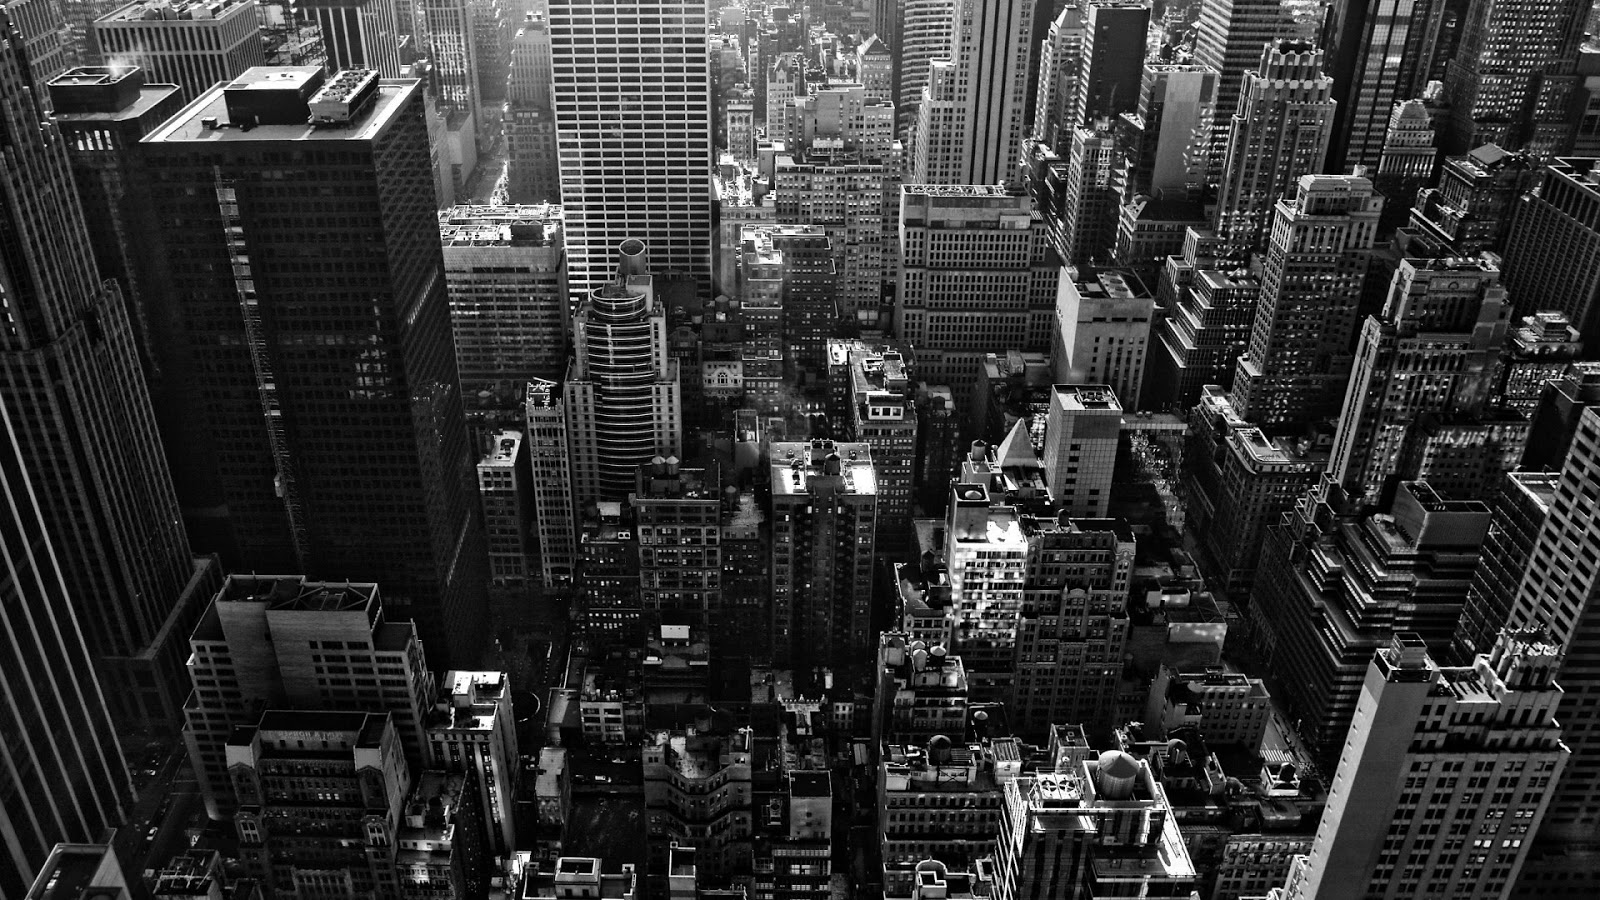 Good Wallpaper Aesthetic Black And White - cityscape-black-white-black-white-cityscape-wallpaper  Perfect Image Reference_73389      .jpg